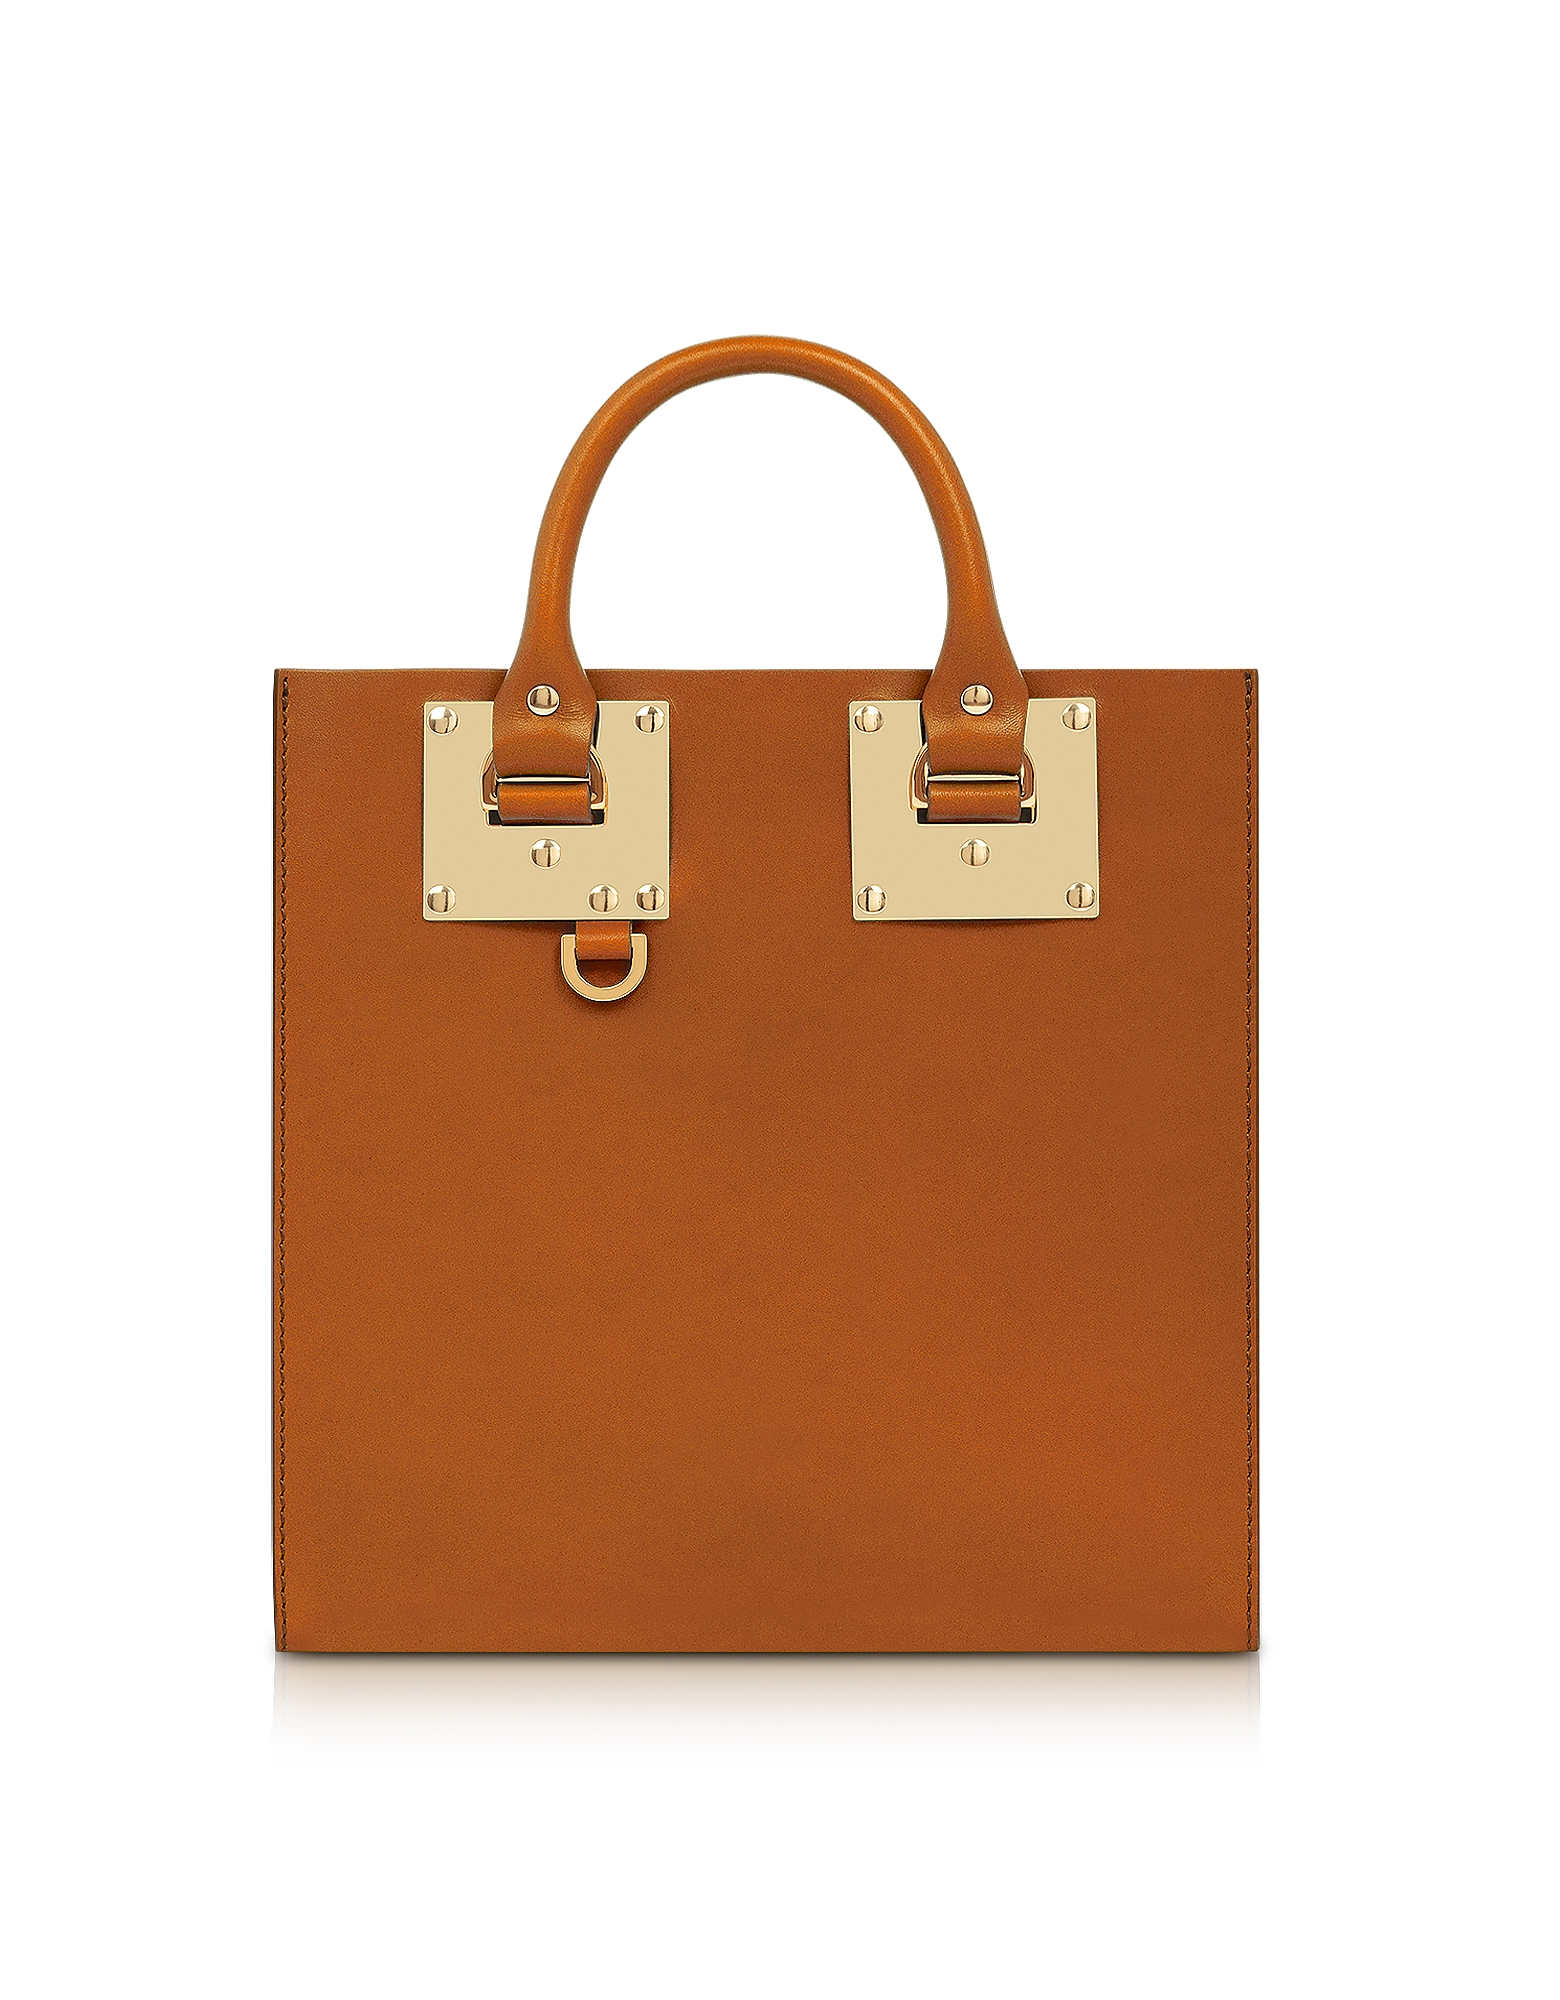 Image of Sophie Hulme Designer Handbags, Tan Albion Square Leather Tote